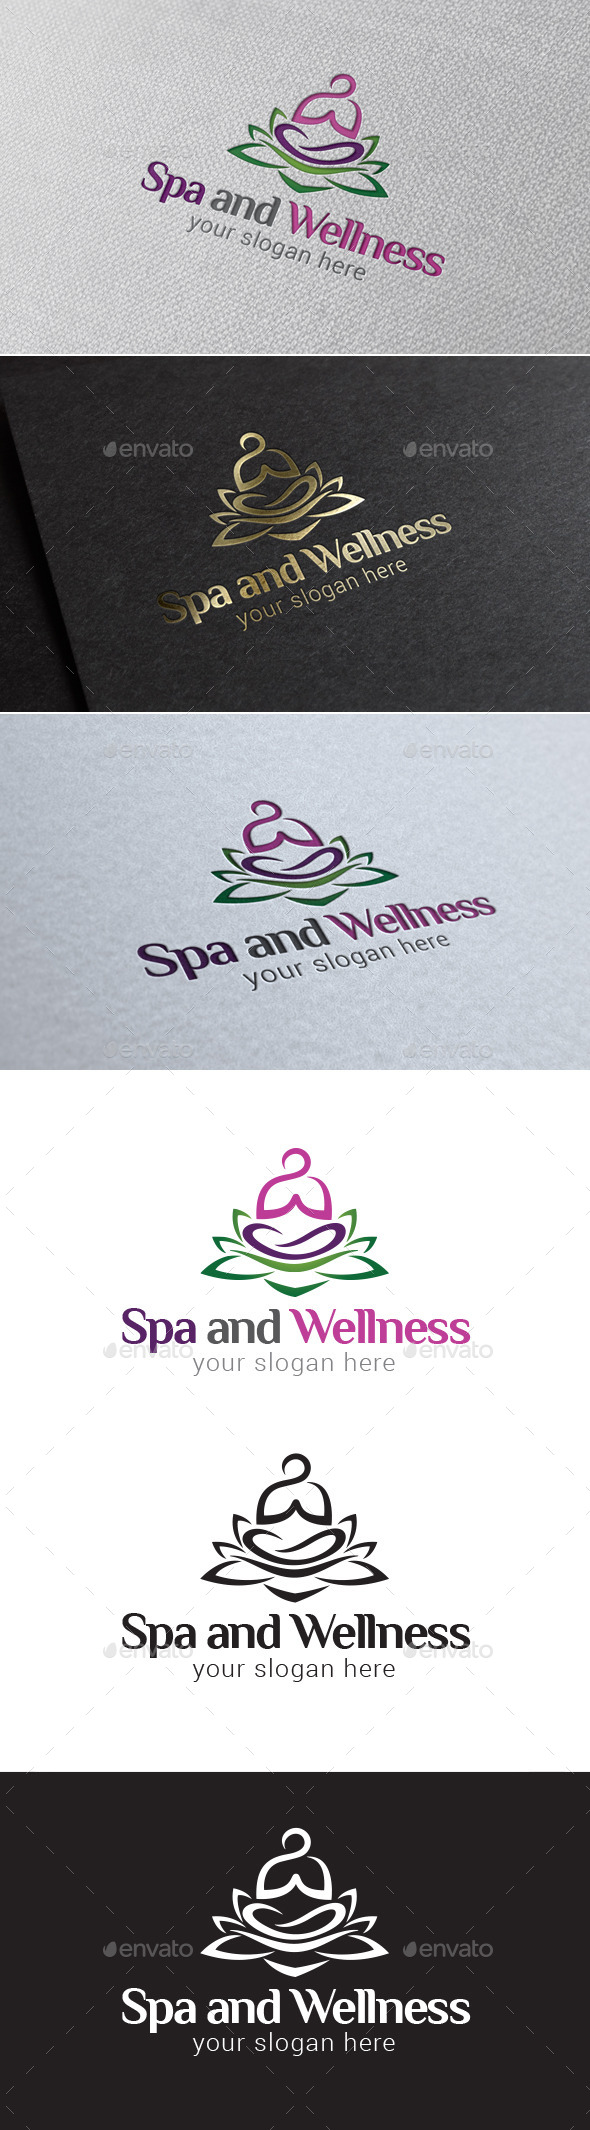 GraphicRiver Spa and Wellness Logo Template 8977763